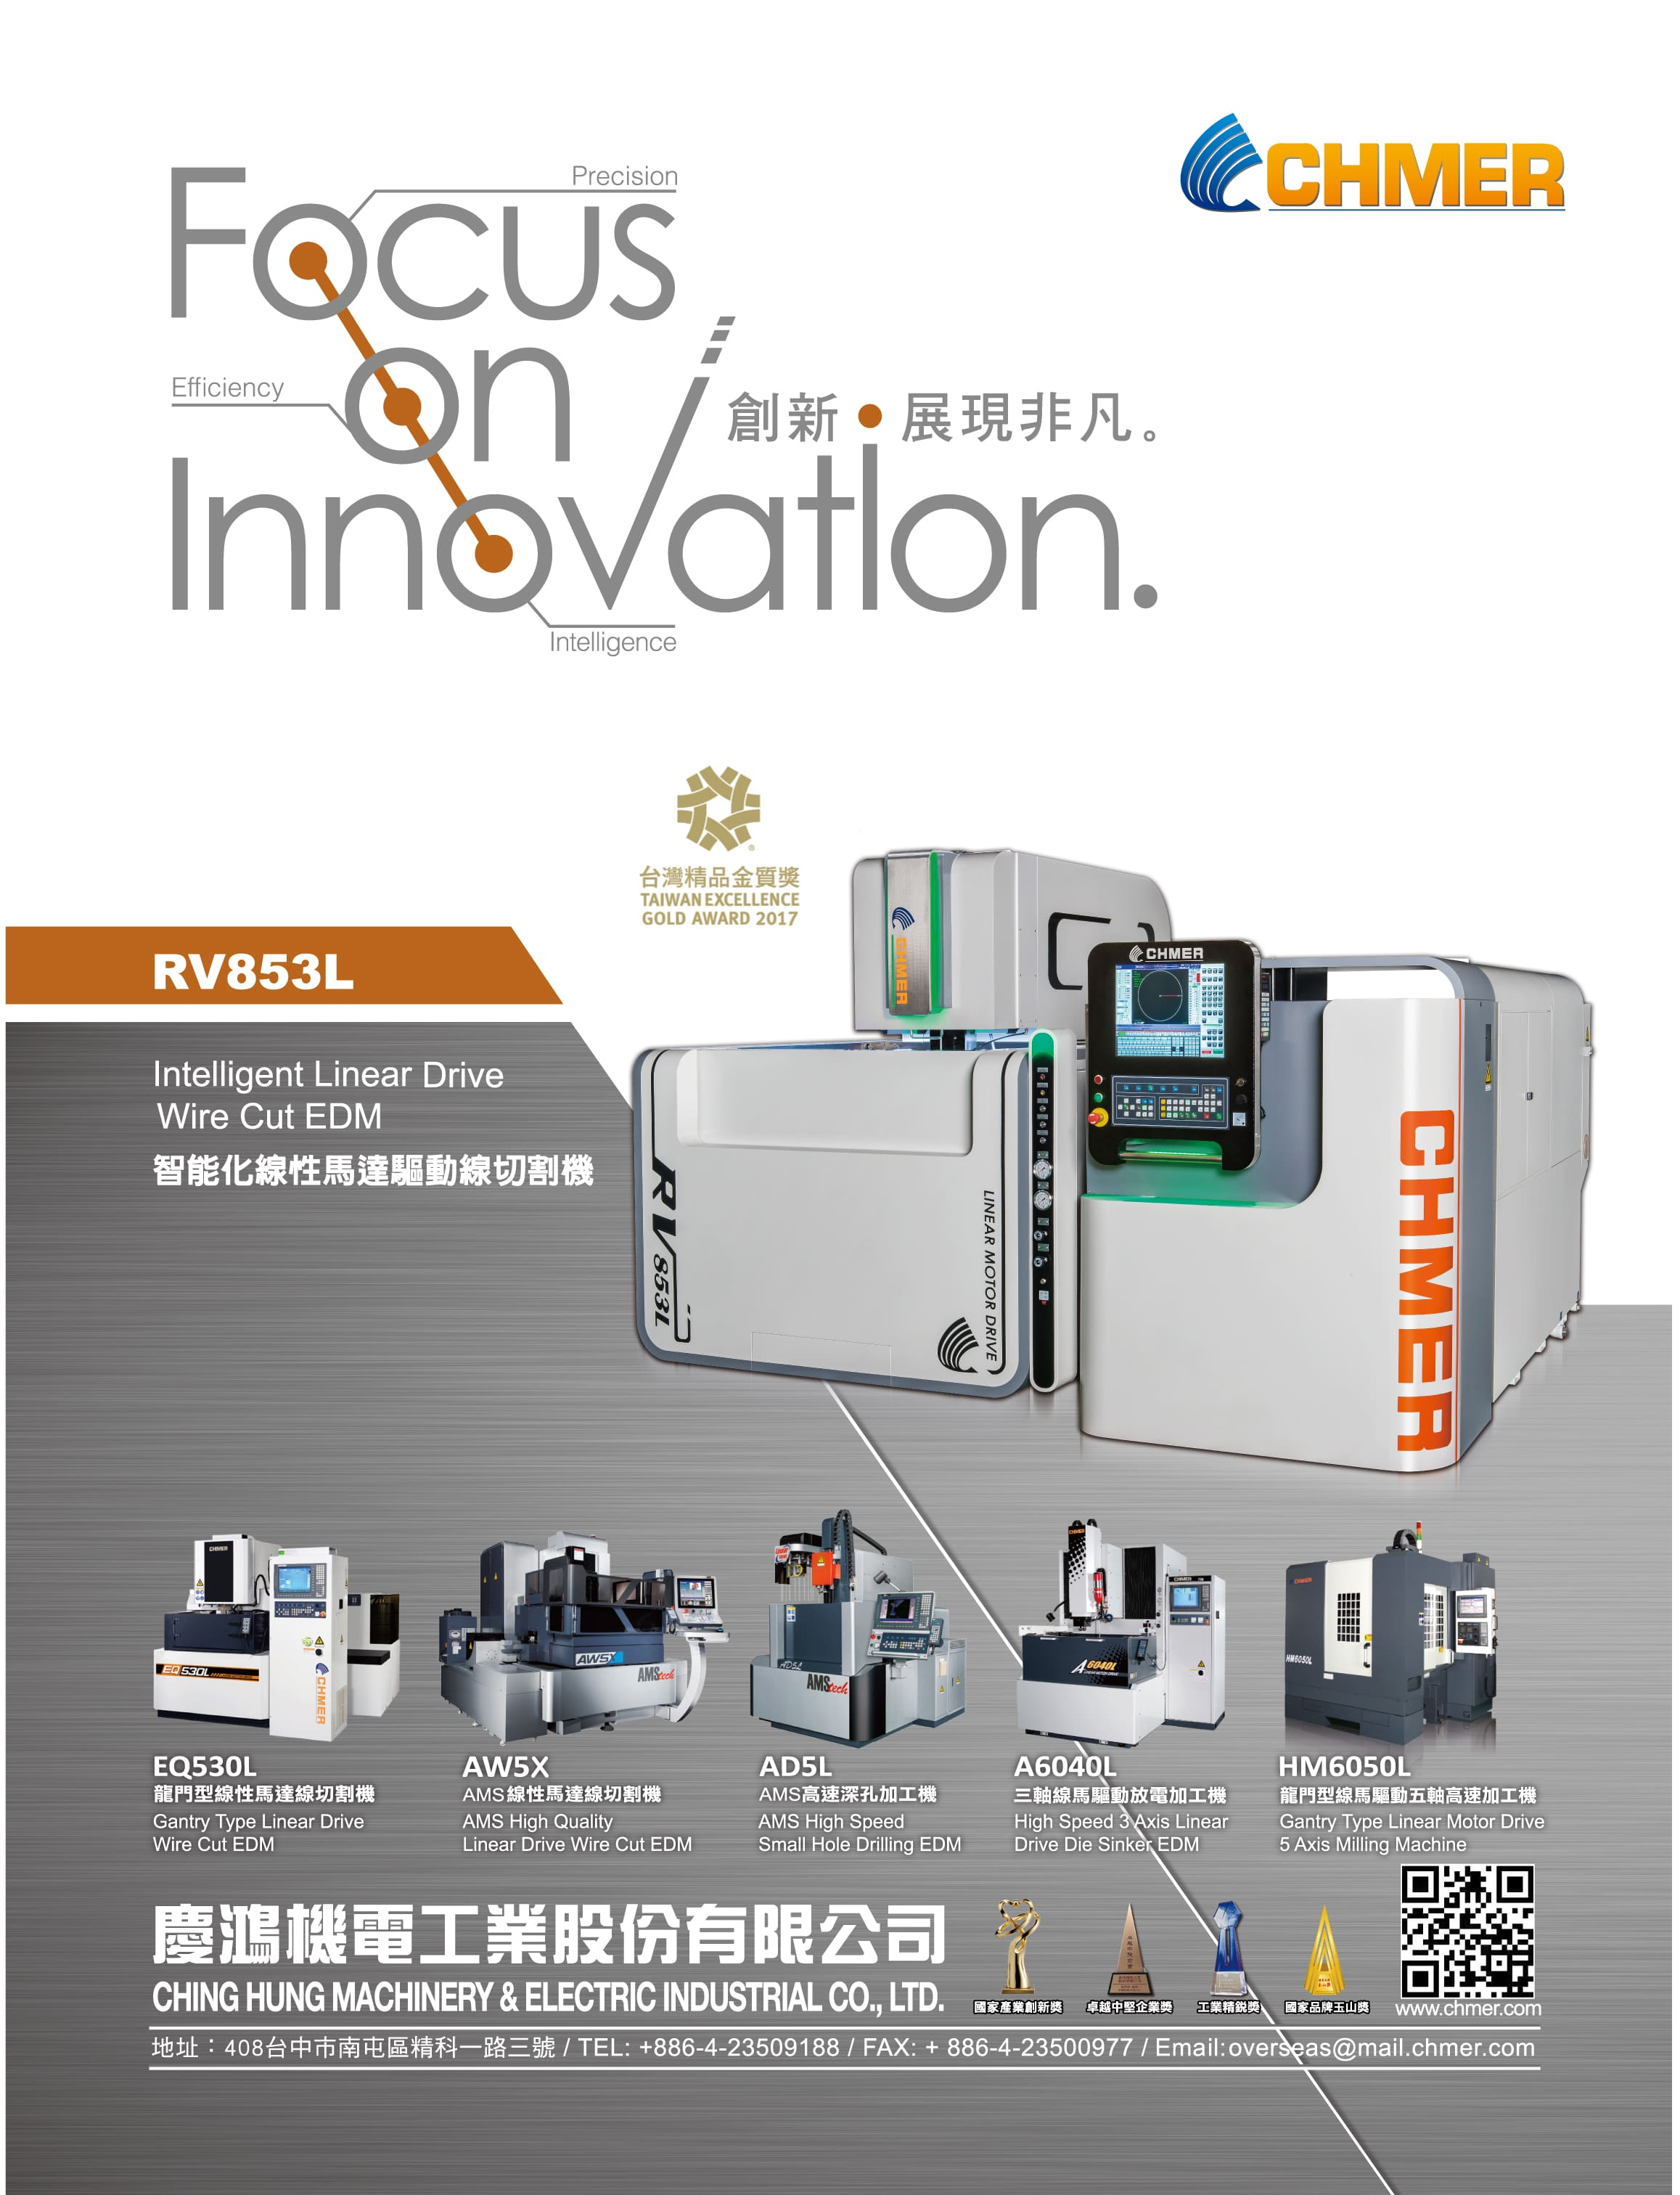 CHING-HUNG MACHINERY & ELECTRIC INDUSTRIAL CO., LTD.